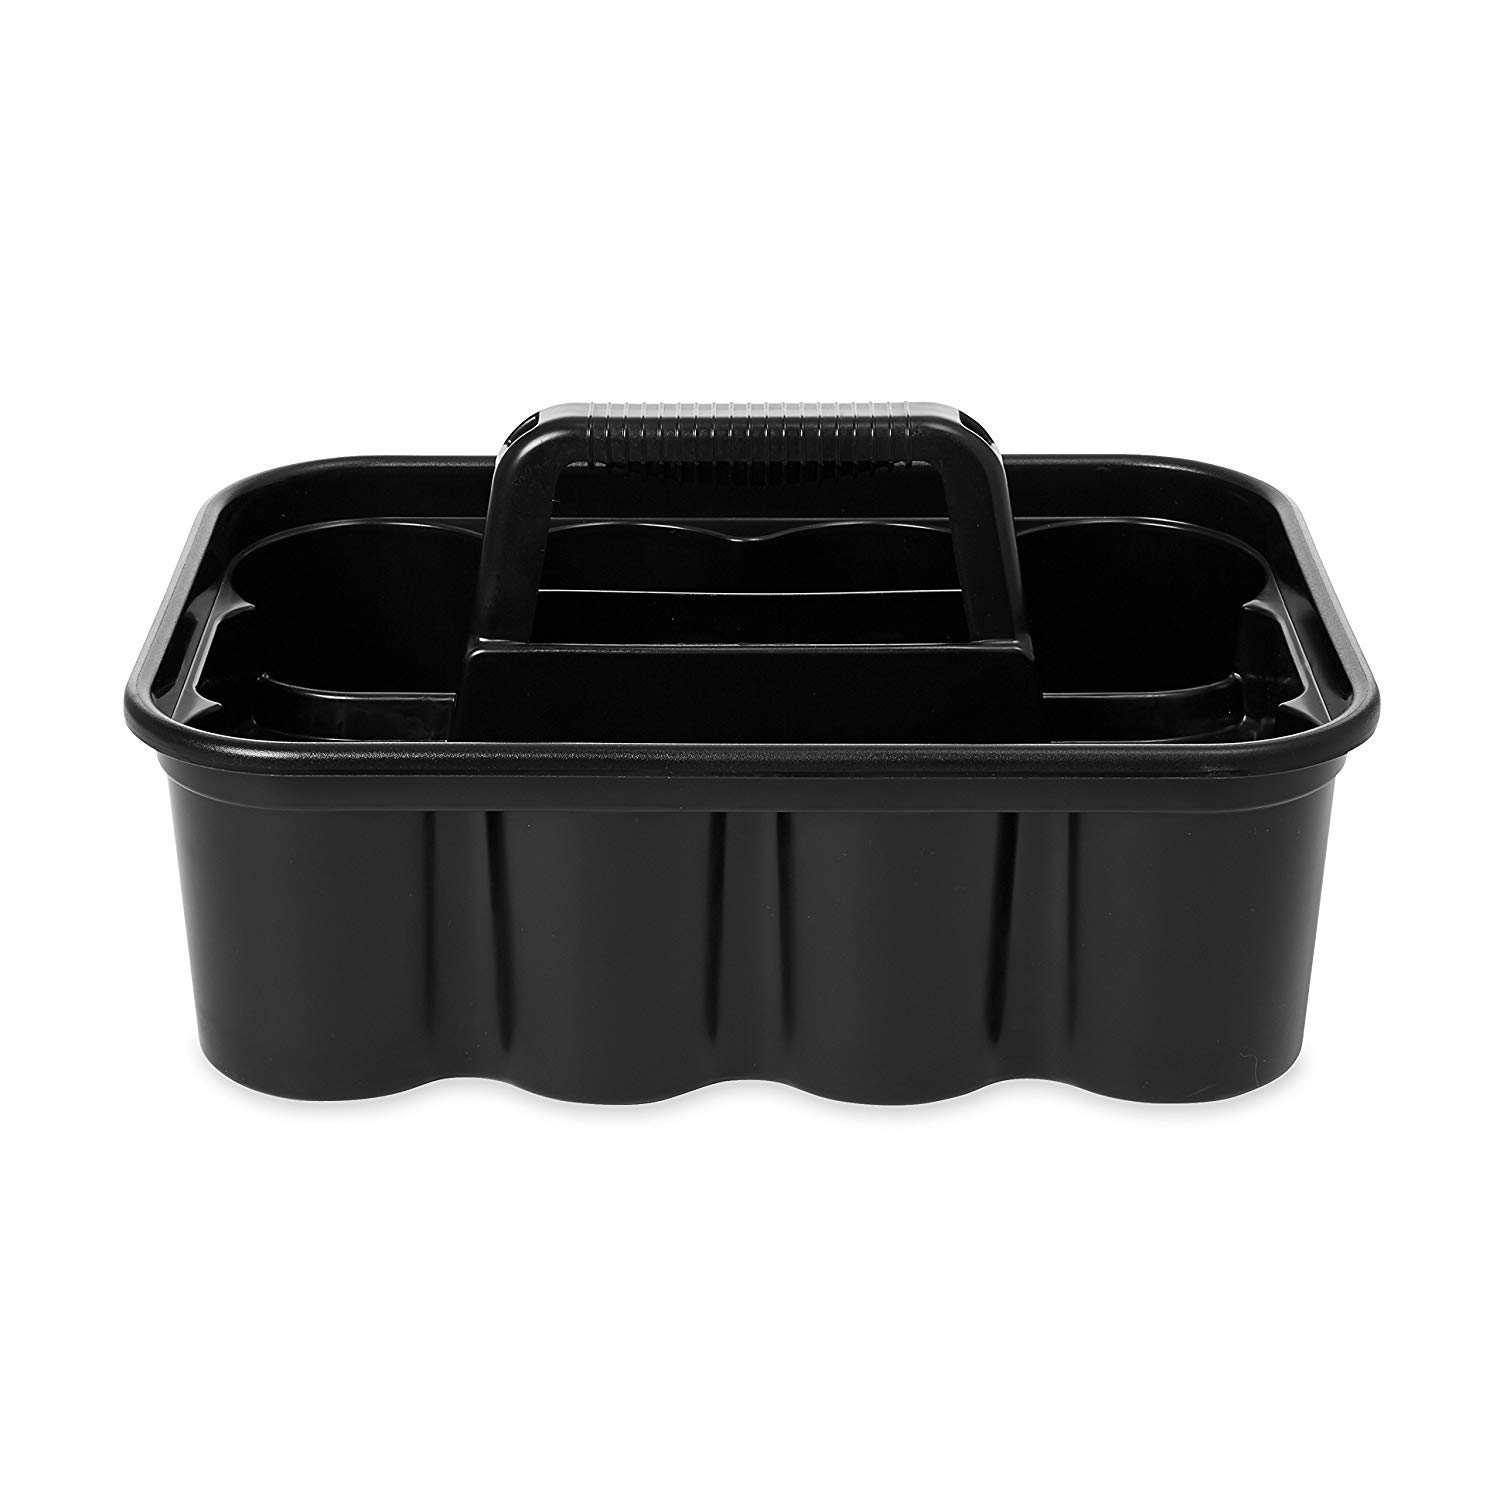 Deluxe Carry Cleaning Caddy, Black (FG315488BLA) by RubbermaidComercialProducts (Image #2)